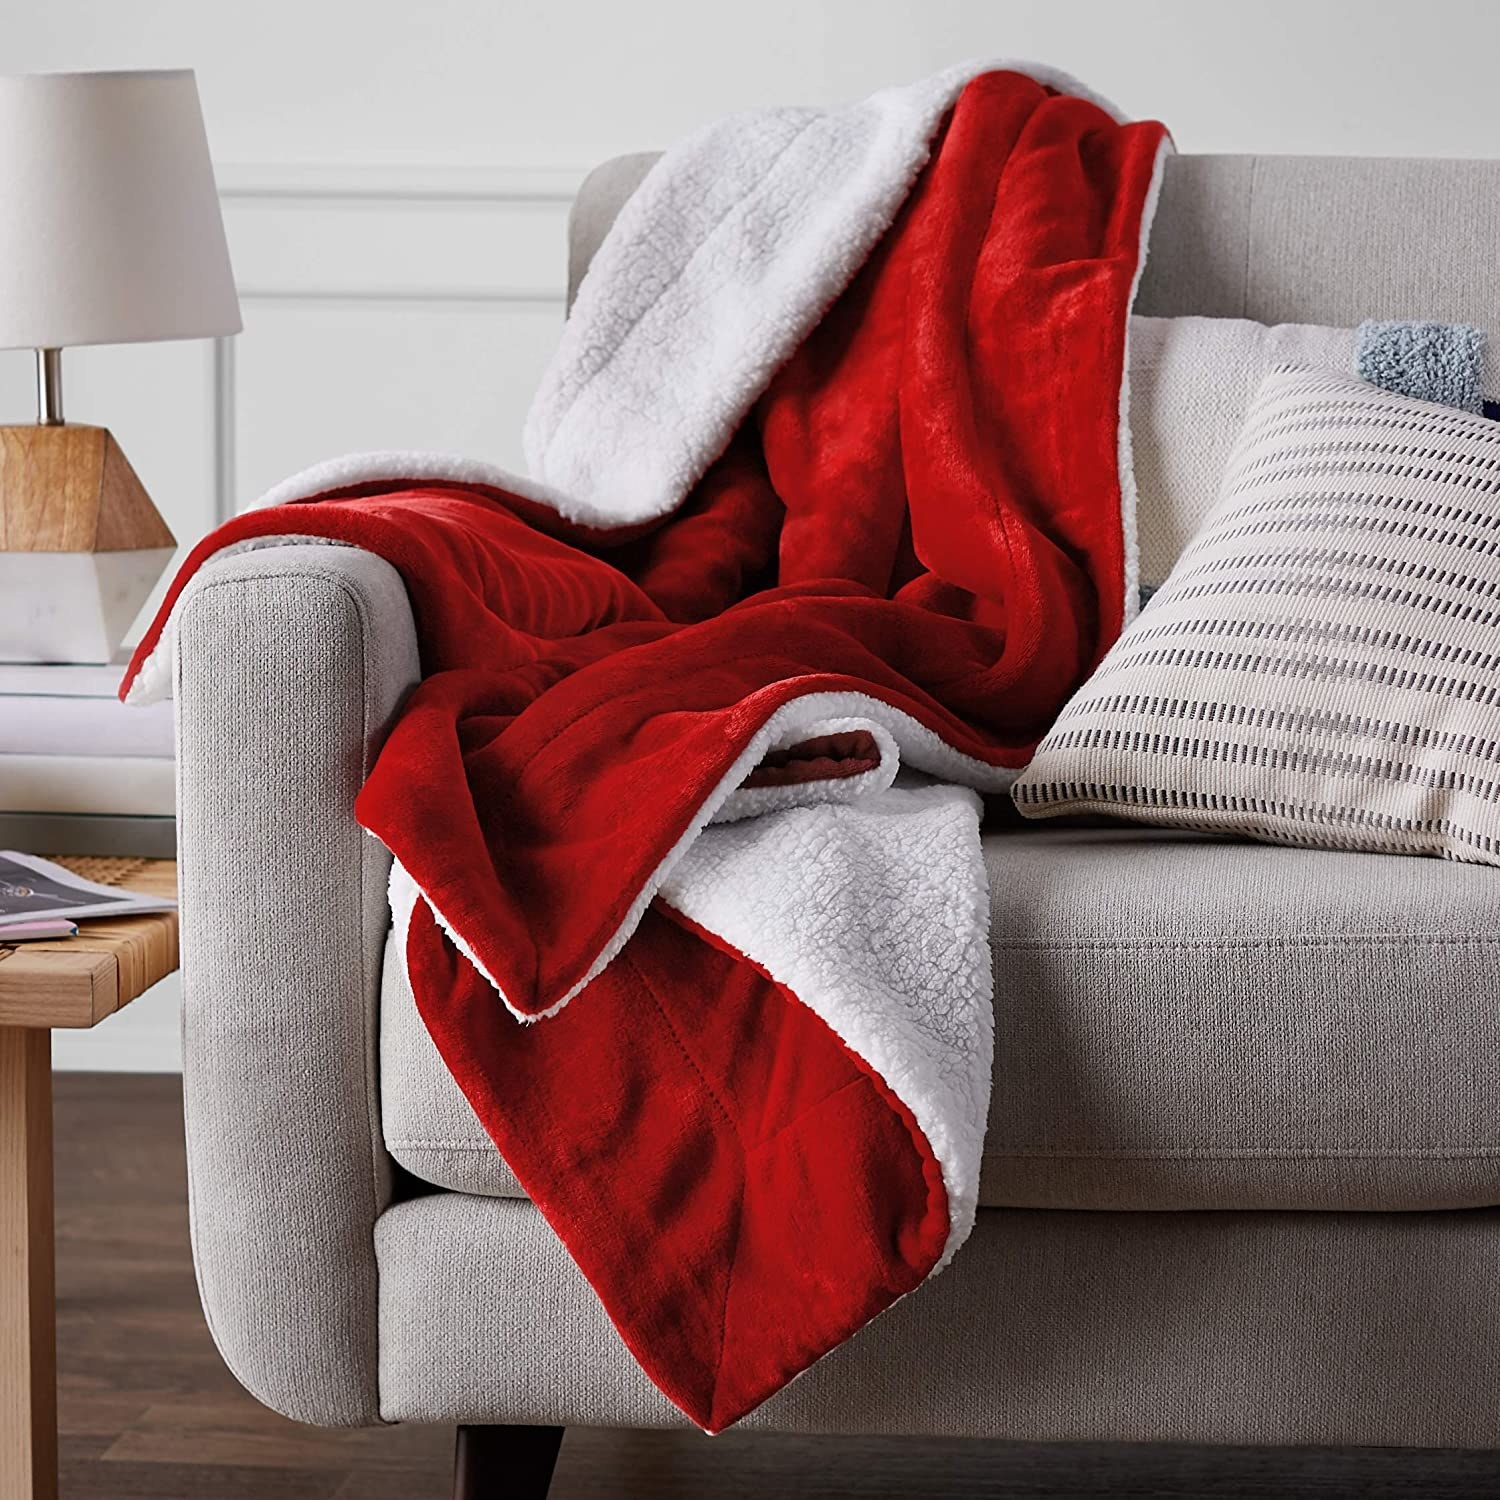 Sherpa throw placed on couch